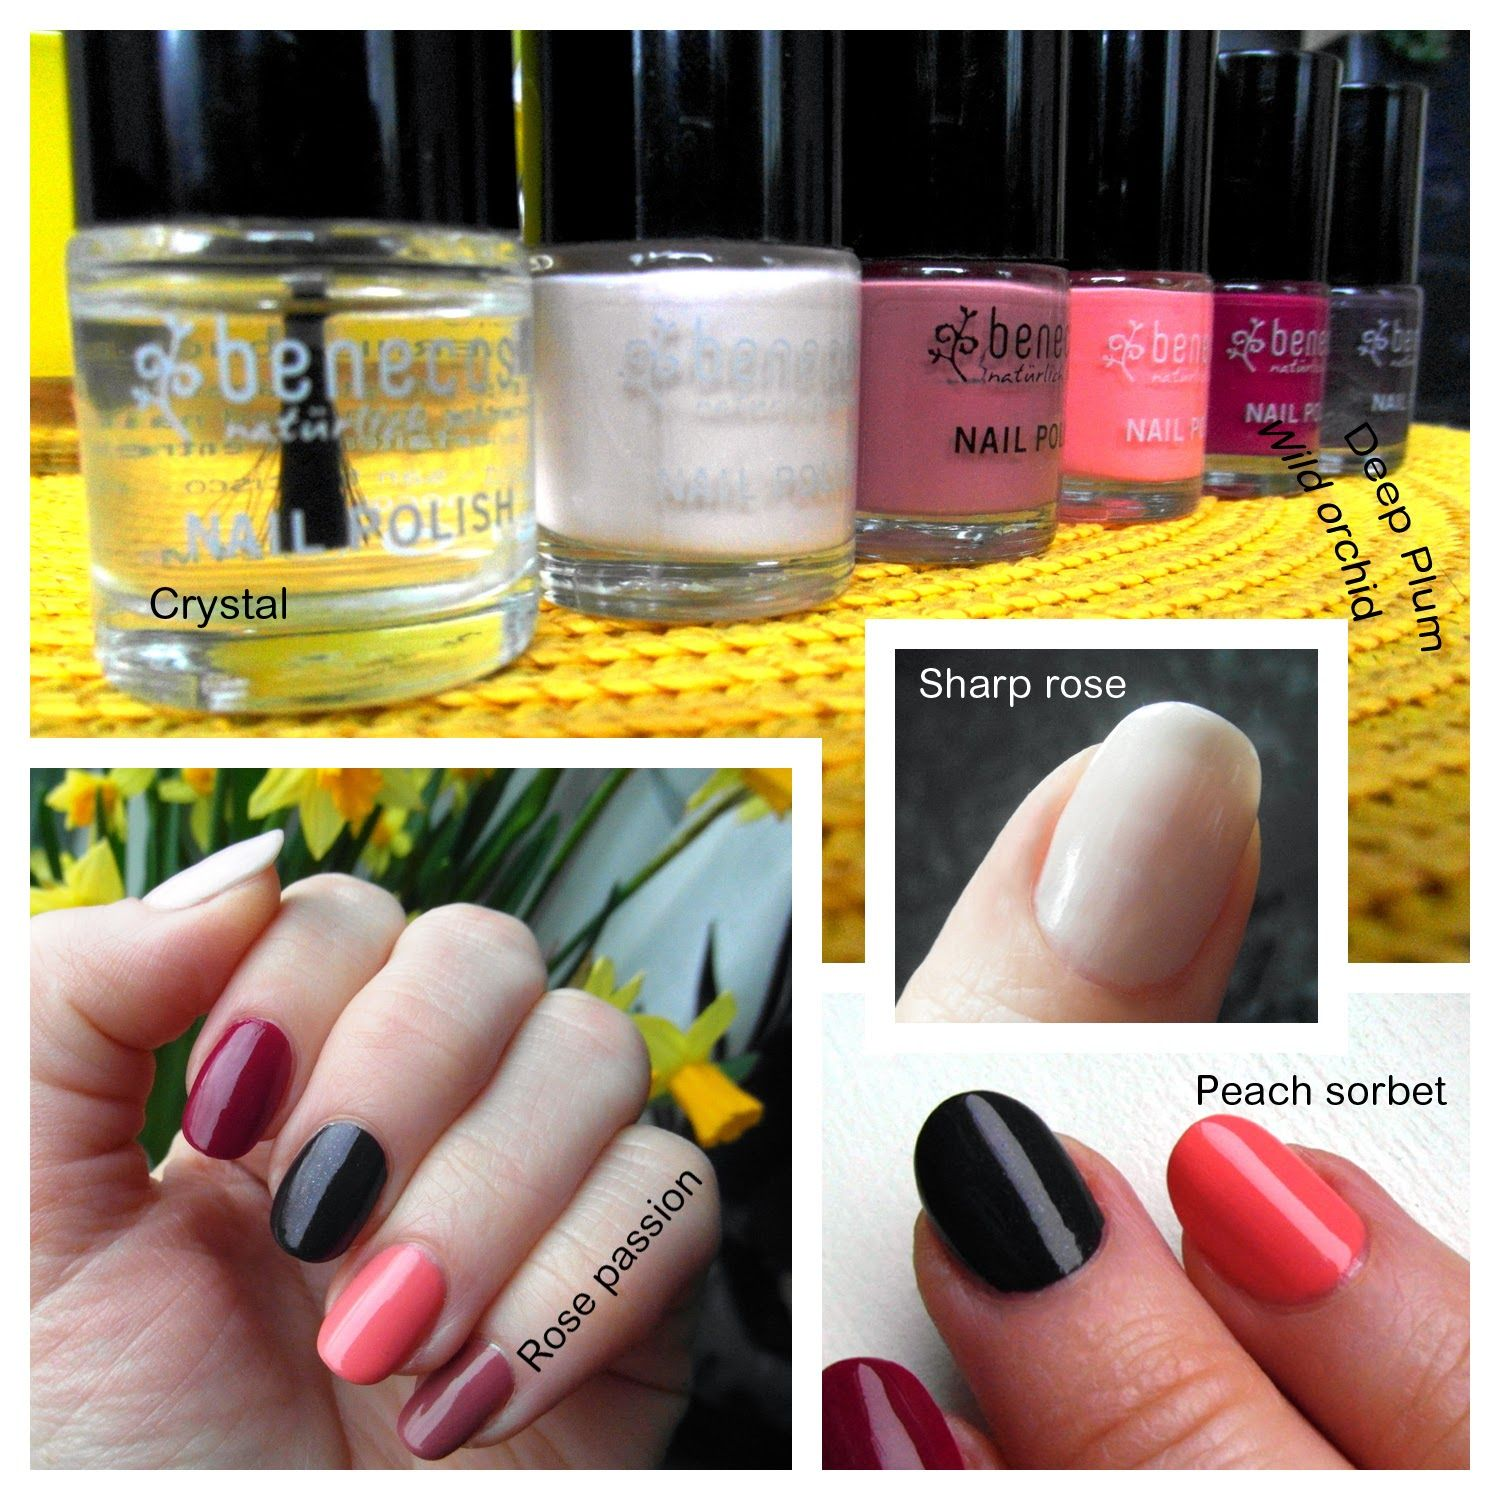 Benecos nail polish 6 colors review: Crystal, Sharp rose, Rose passion, Peach sorbet, Wild orchid, Deep Plum.